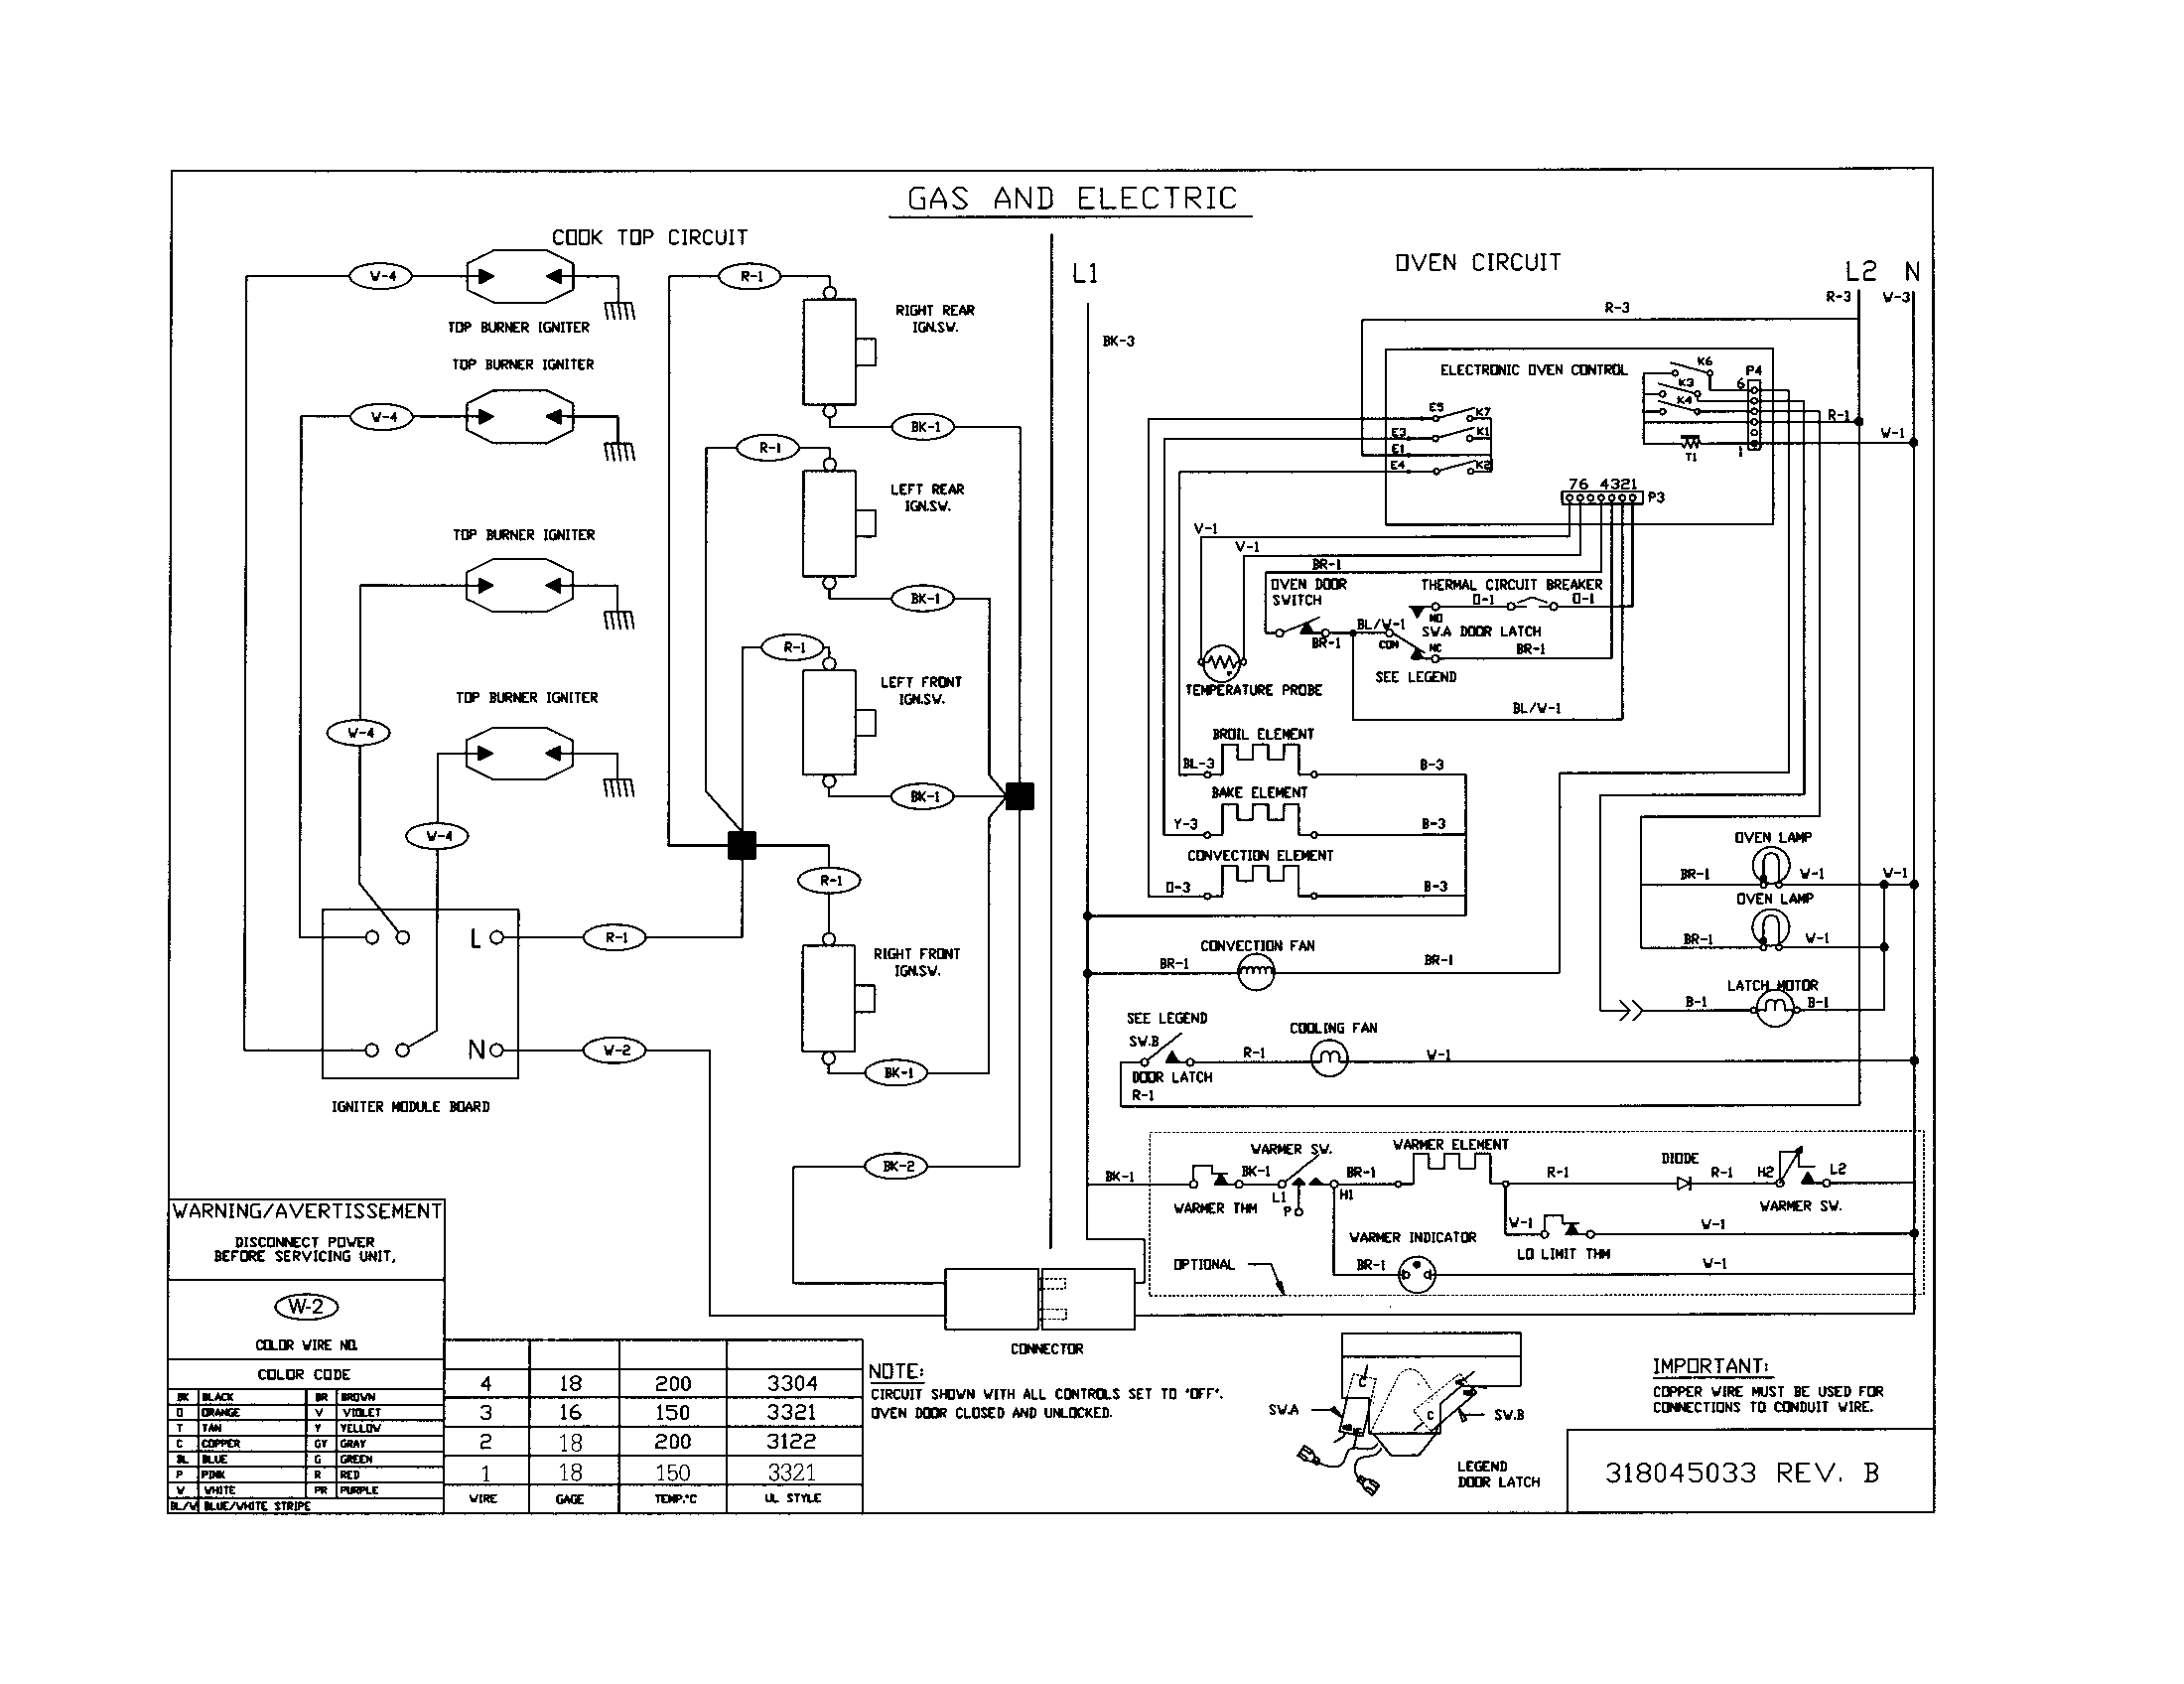 wiring parts kenmore wiring diagram kenmore wiring diagram \u2022 wiring diagrams kenmore elite dryer wiring diagram at creativeand.co